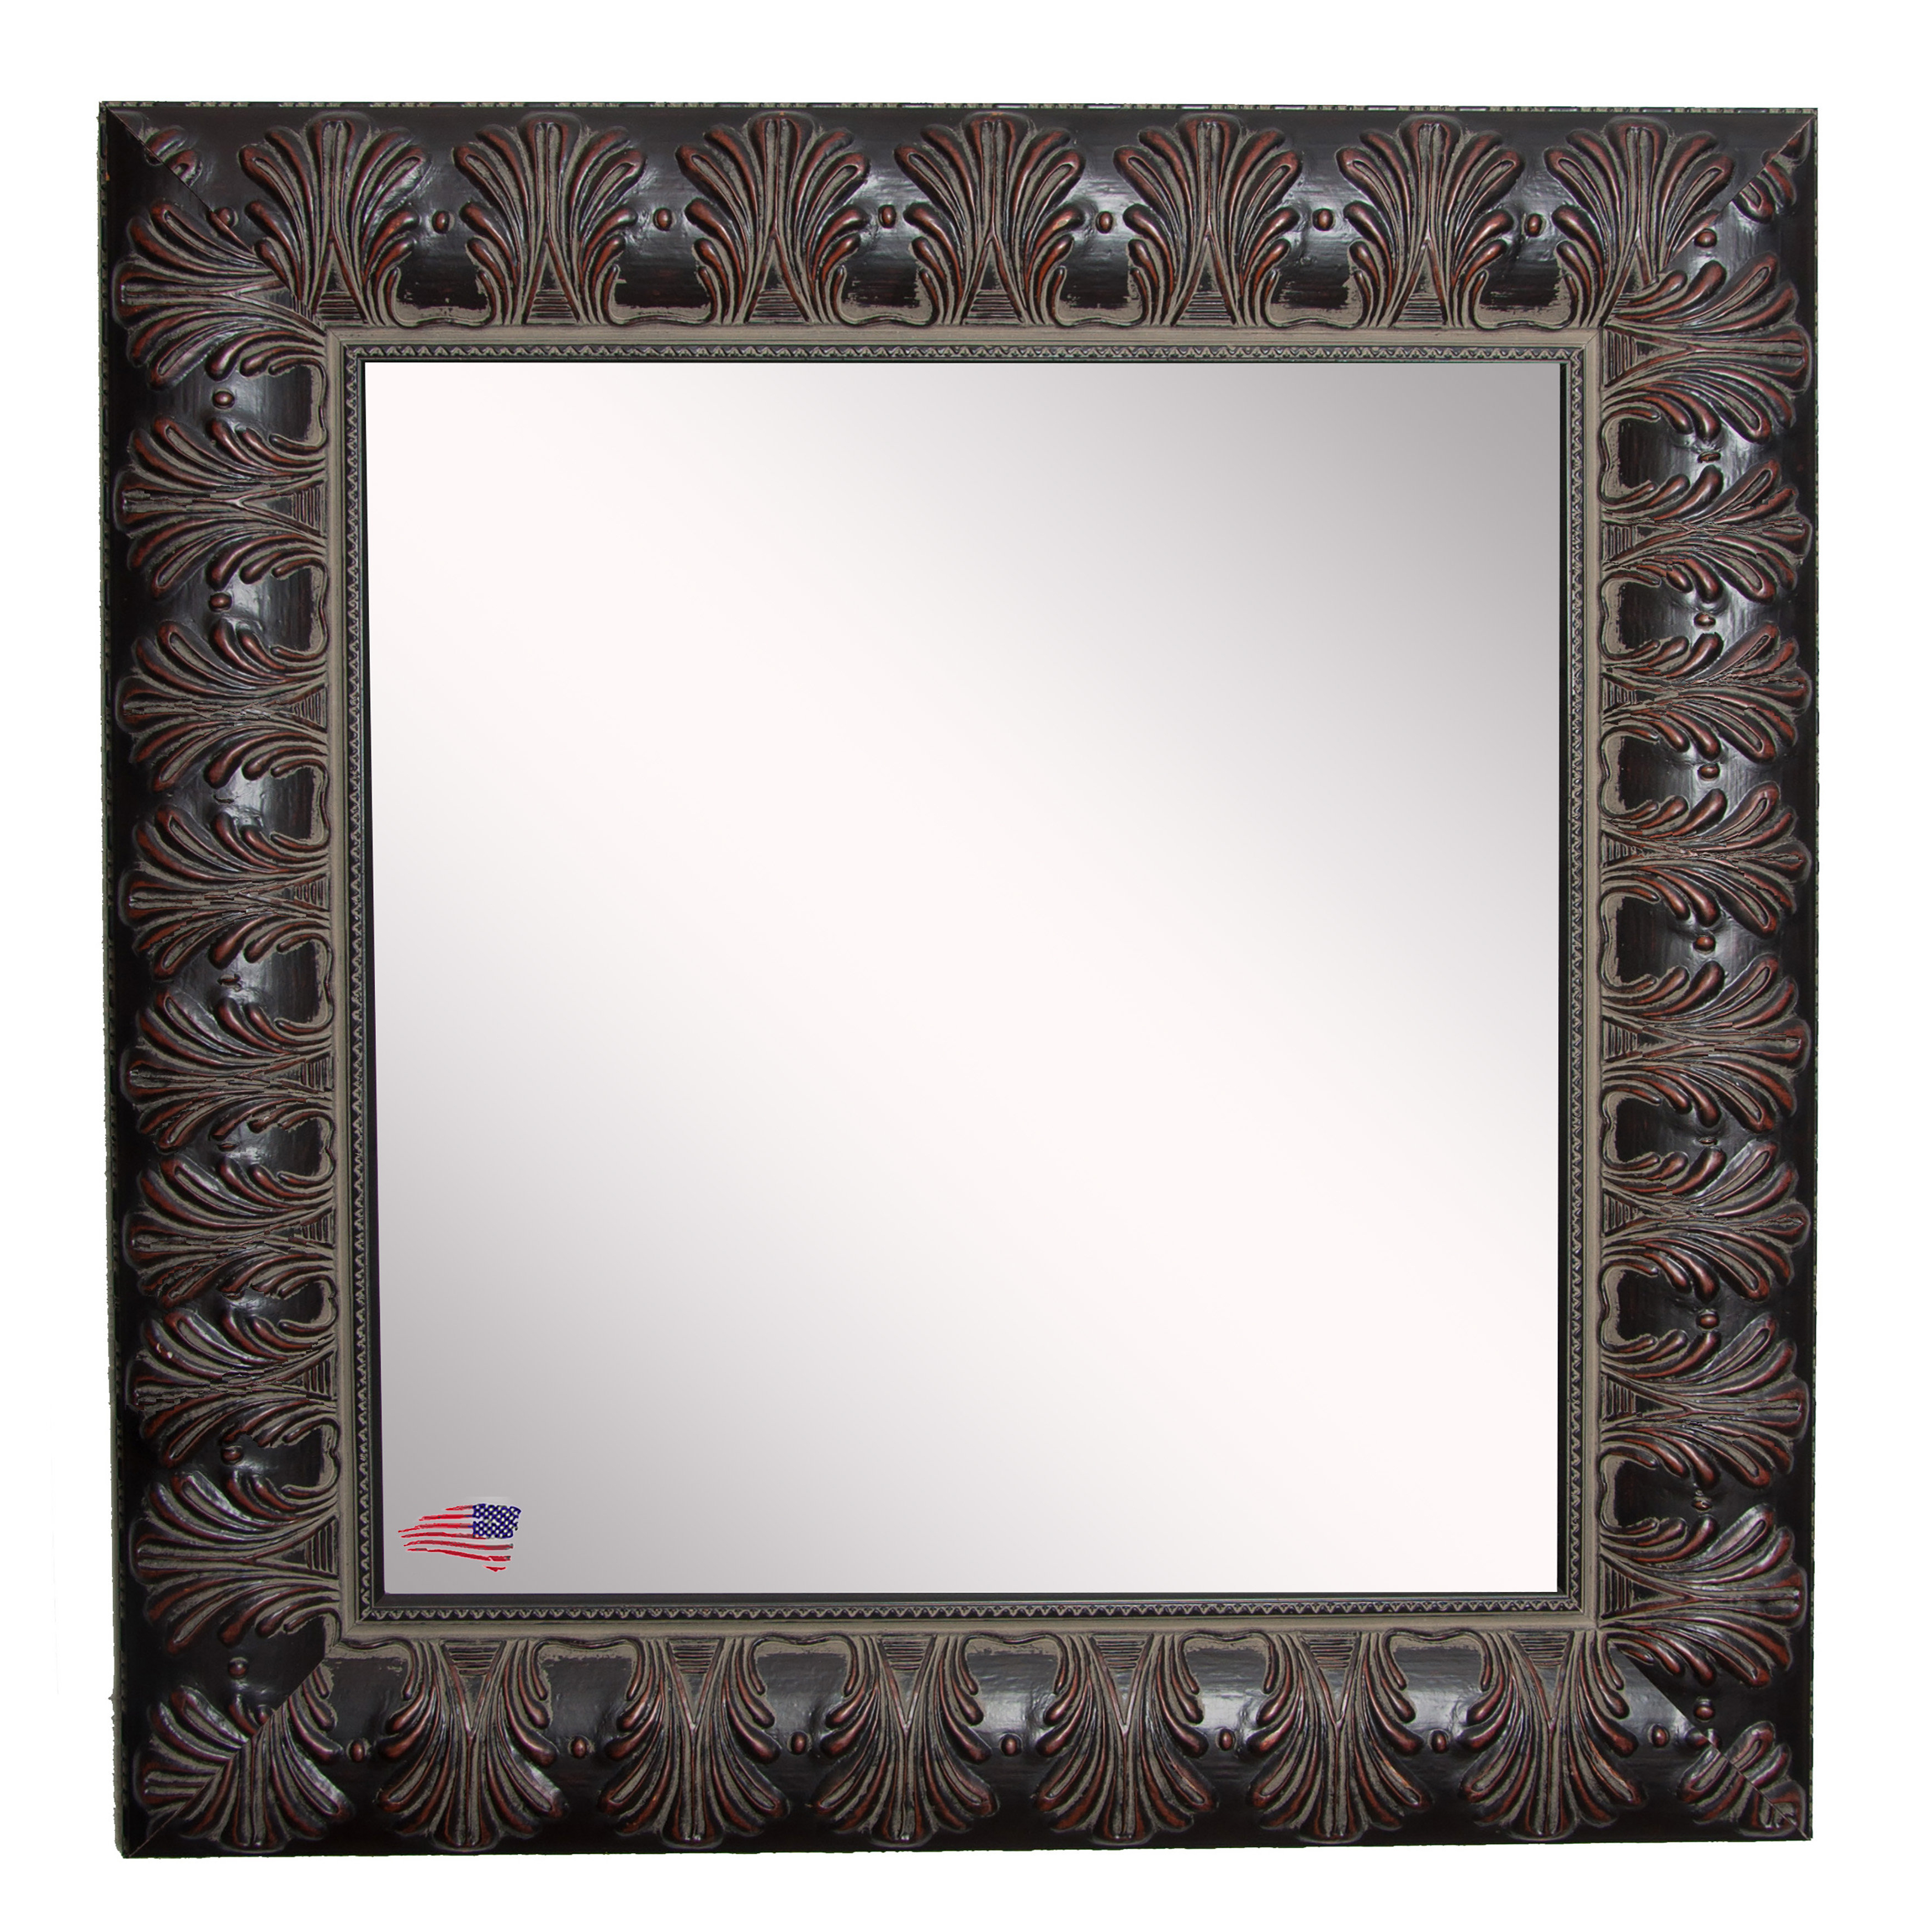 Best And Newest Ulus Accent Mirrors Within Square Feathered Accent Wall Mirror (View 2 of 20)